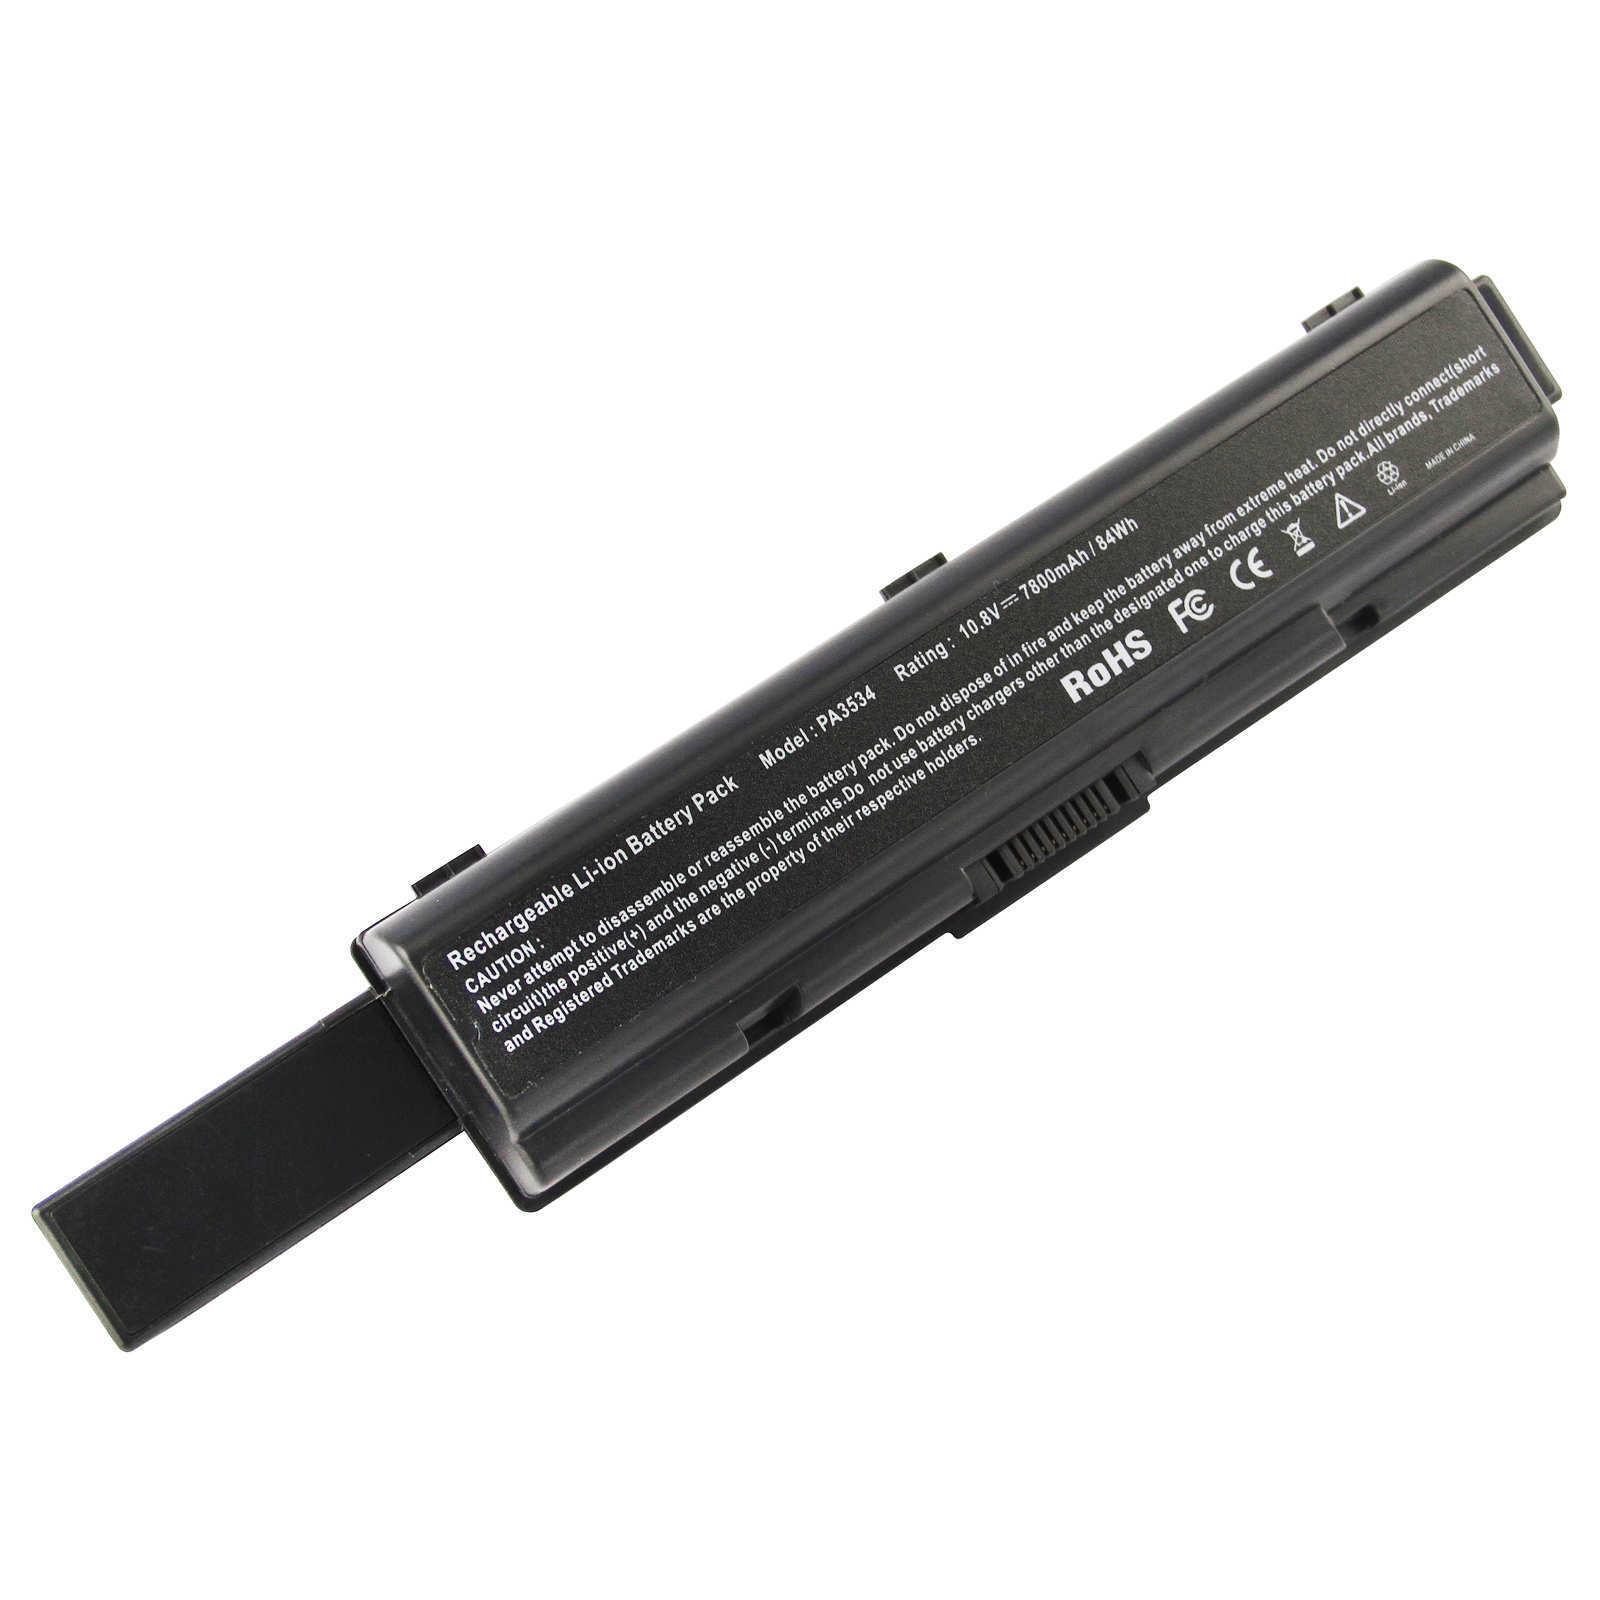 Replacement Toshiba Satellite A355D-S69301 Battery